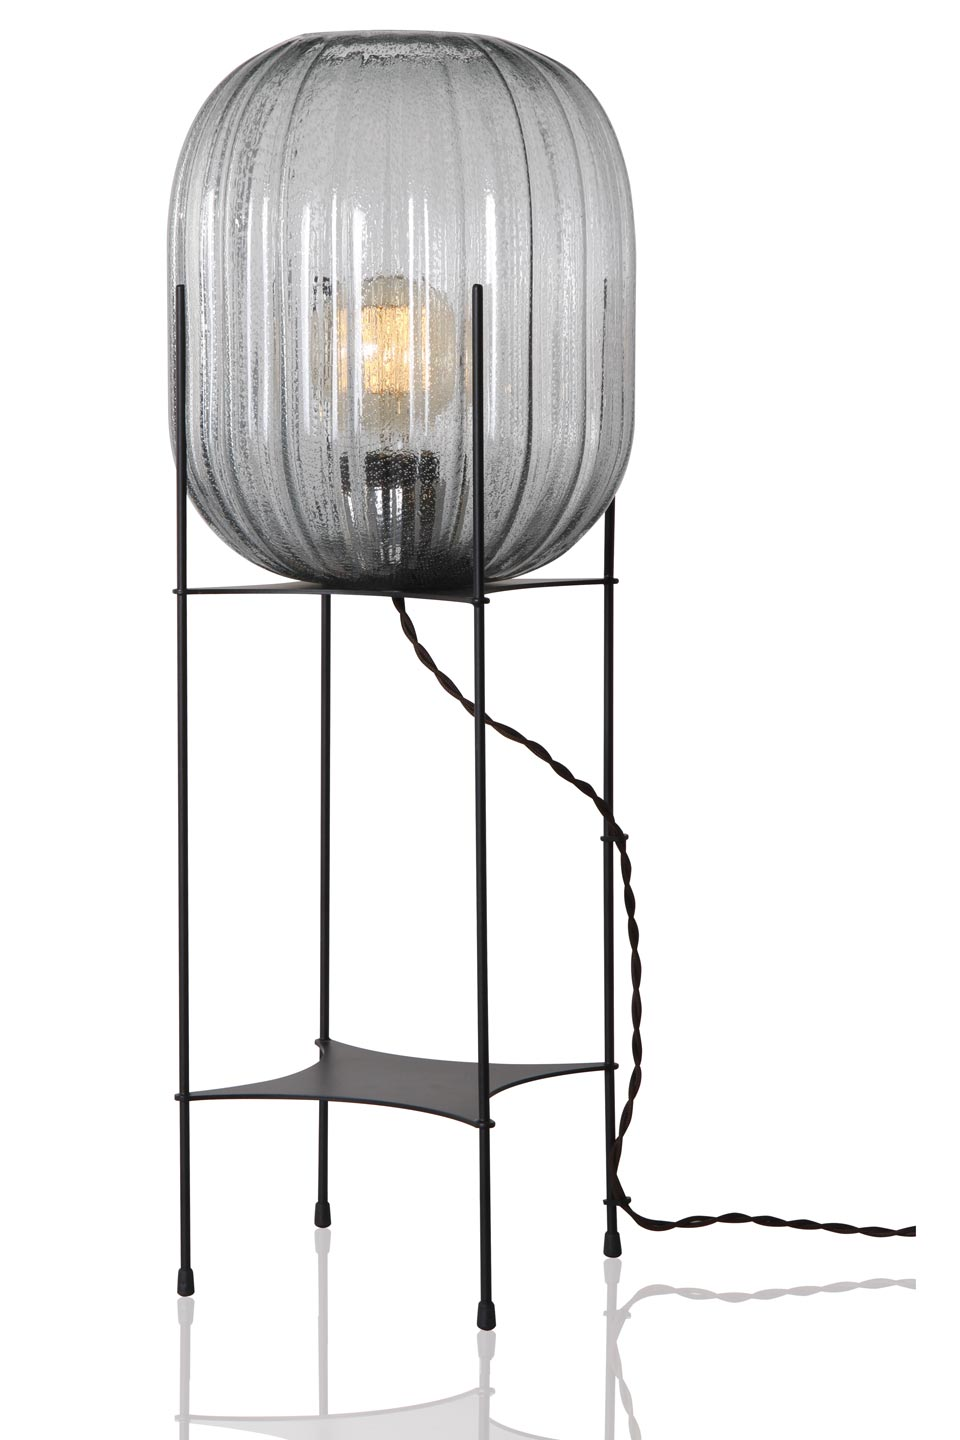 Hammam small floor lamp model M. Concept Verre.